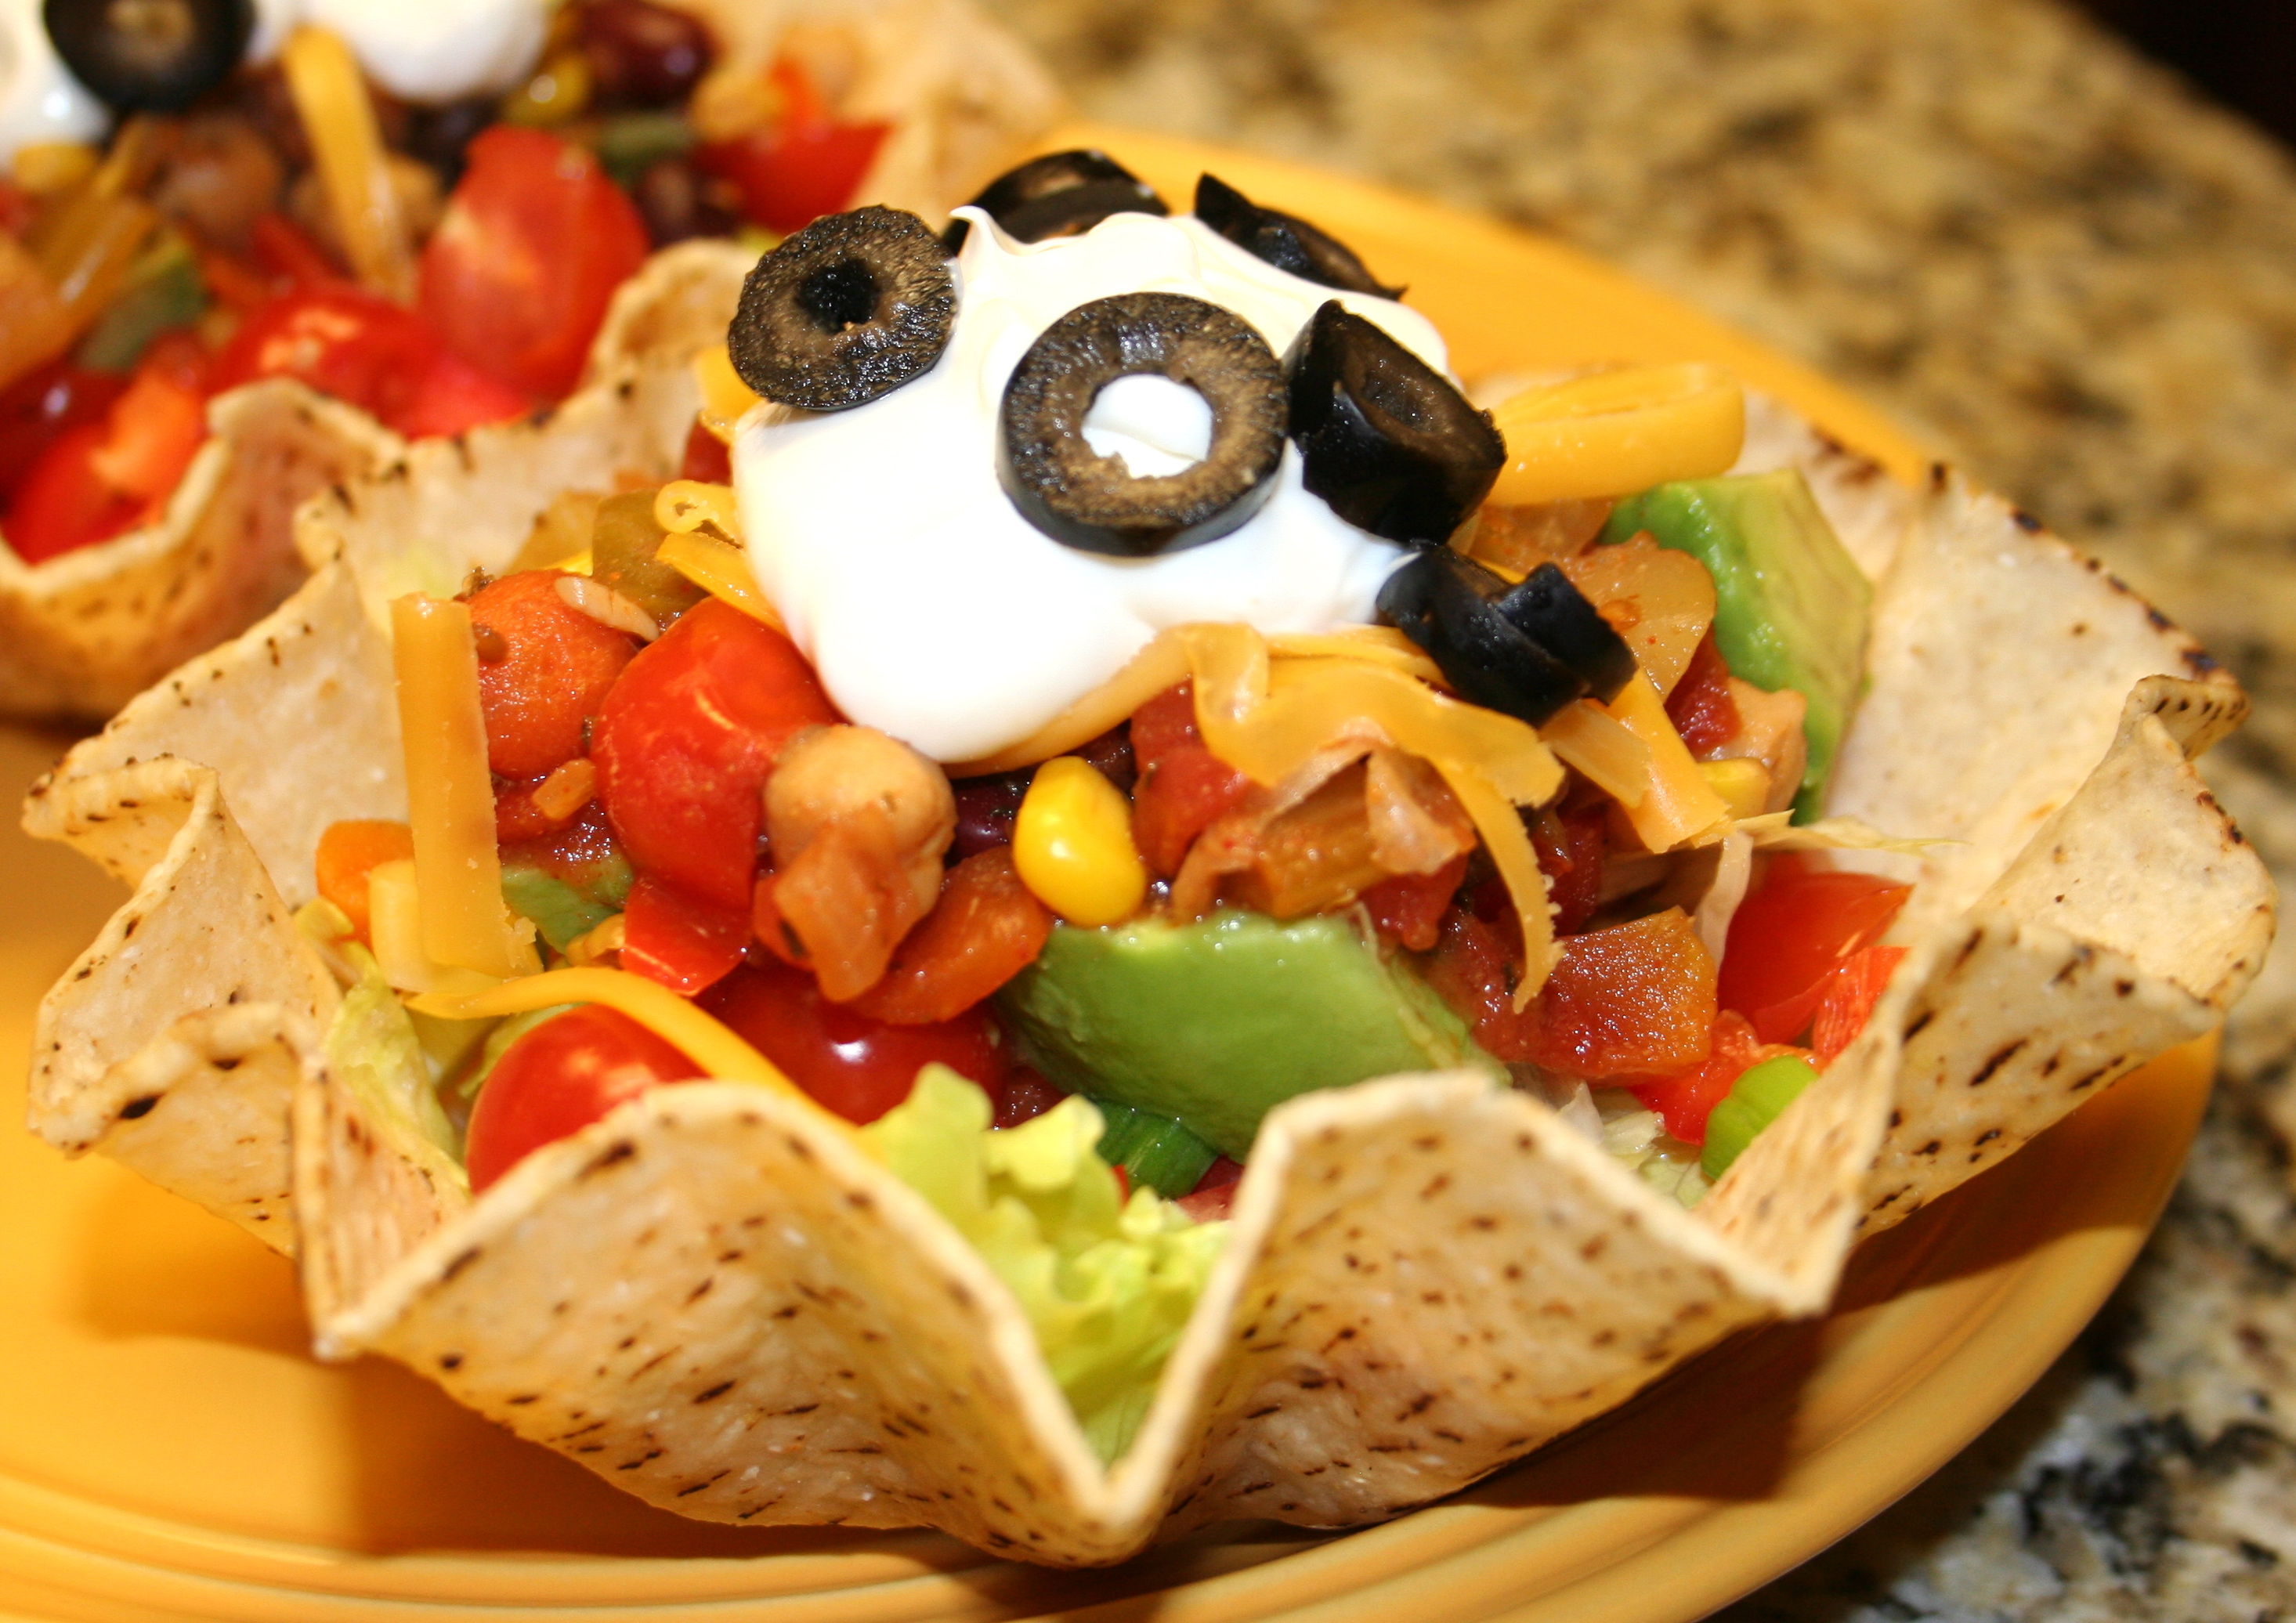 What to do with Leftover Vegetarian Chili? – Make a Taco ...